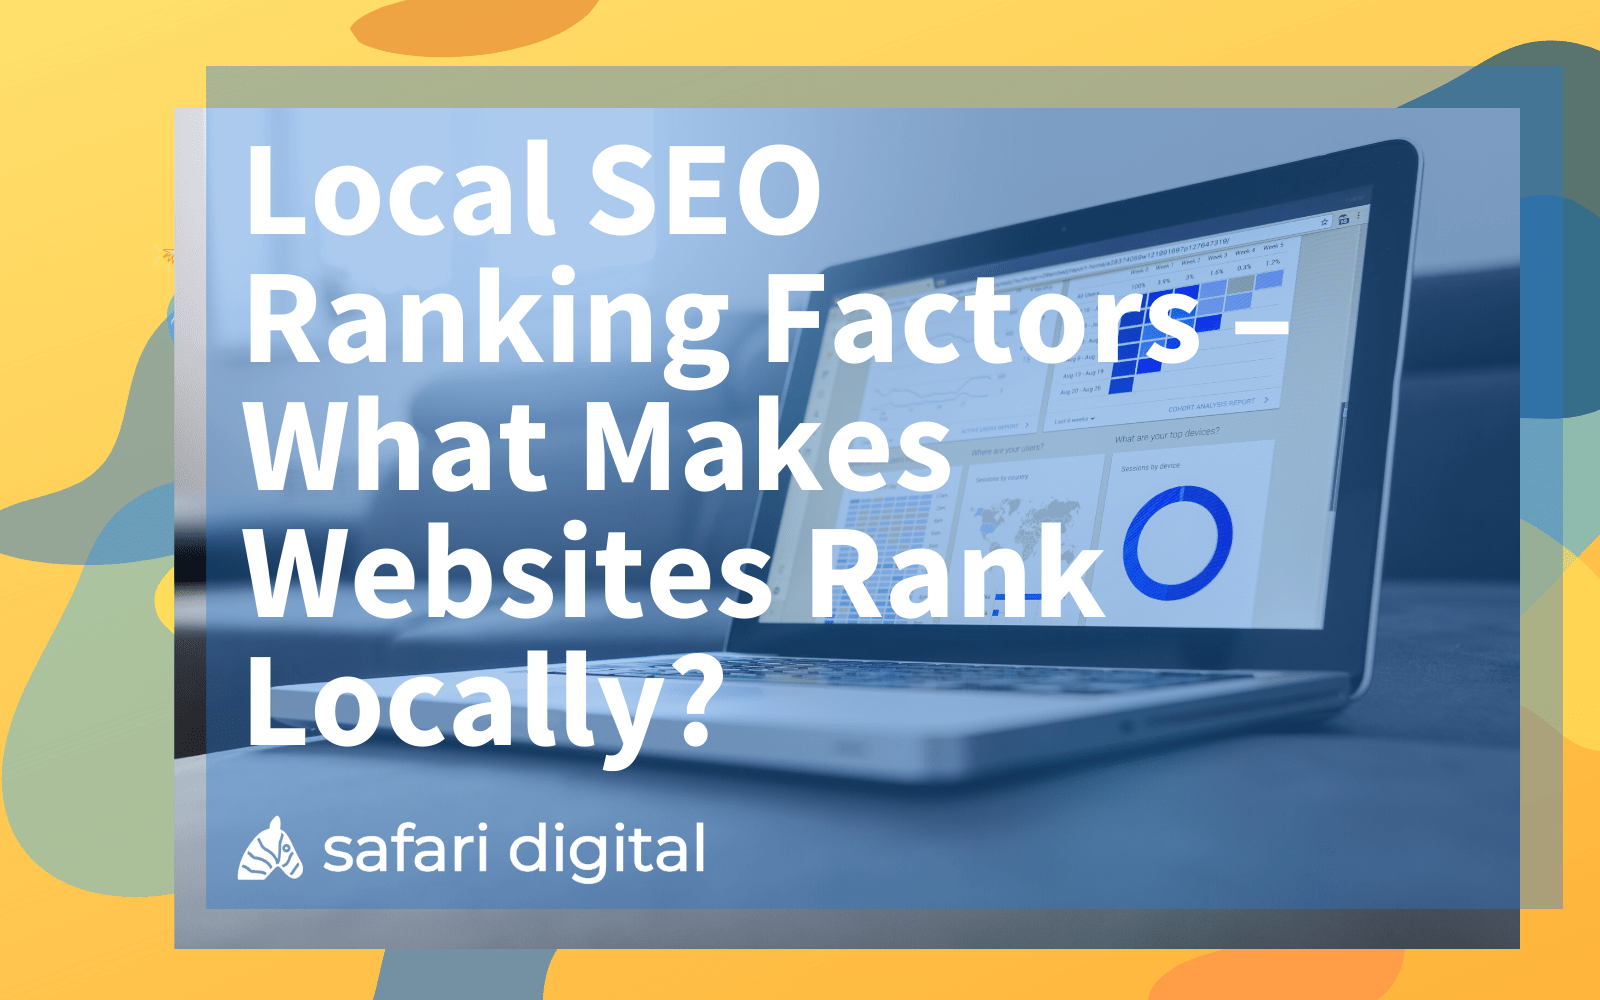 Local SEO ranking factors 2020 - large cover image